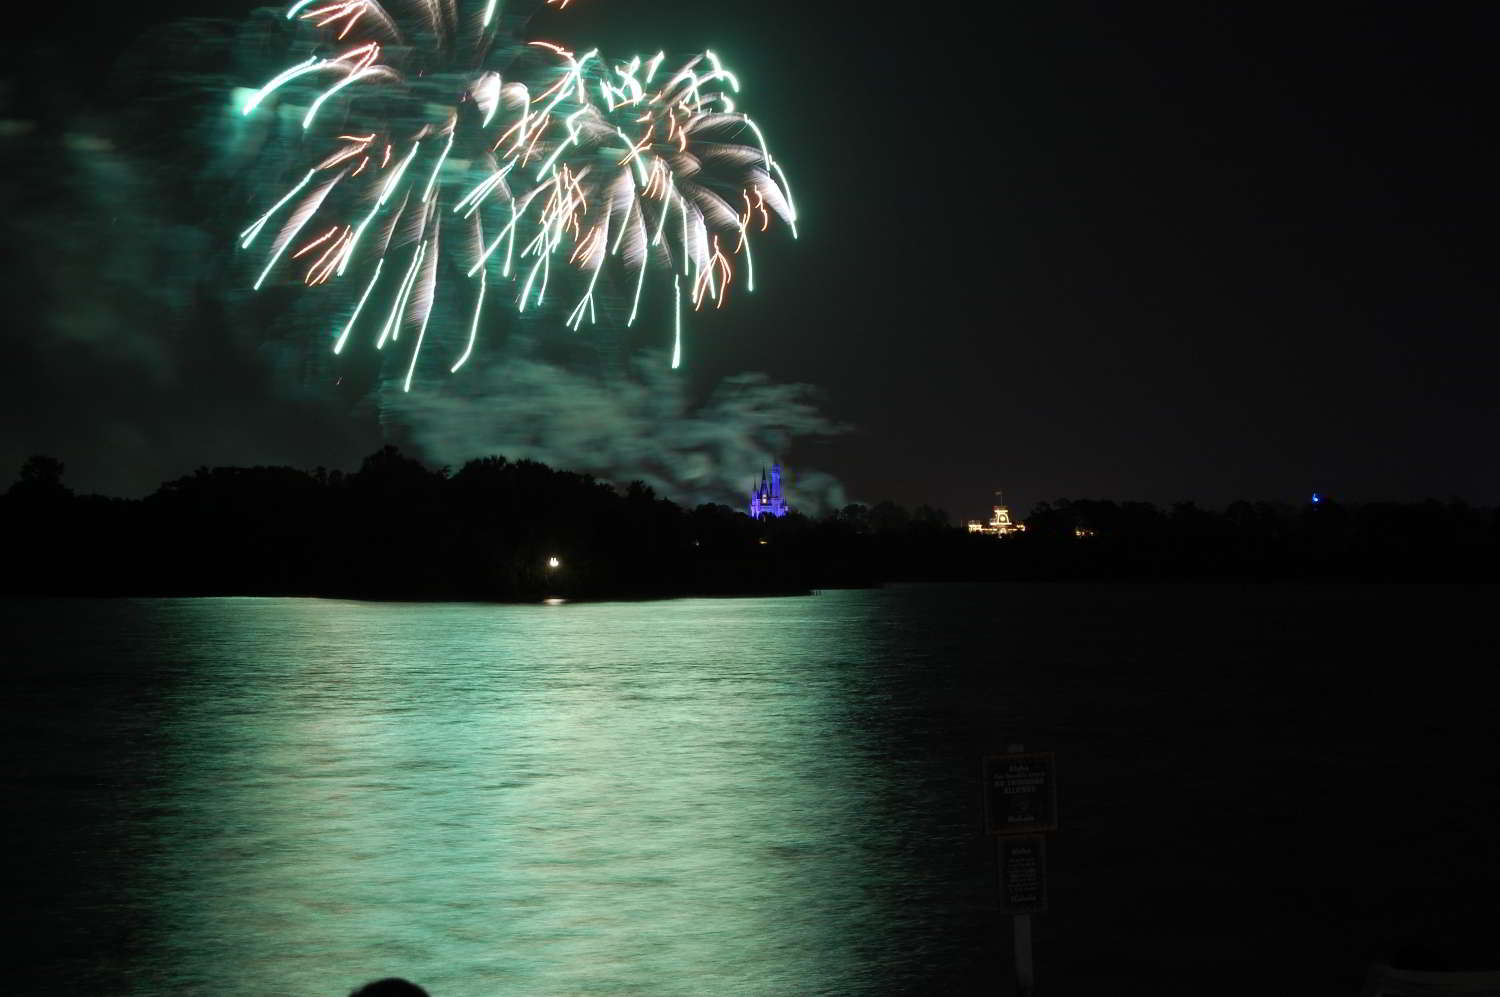 You can view the Magic Kingdom's Wishes fireworks on the Beach of Disney's Polynesian Village Resort.